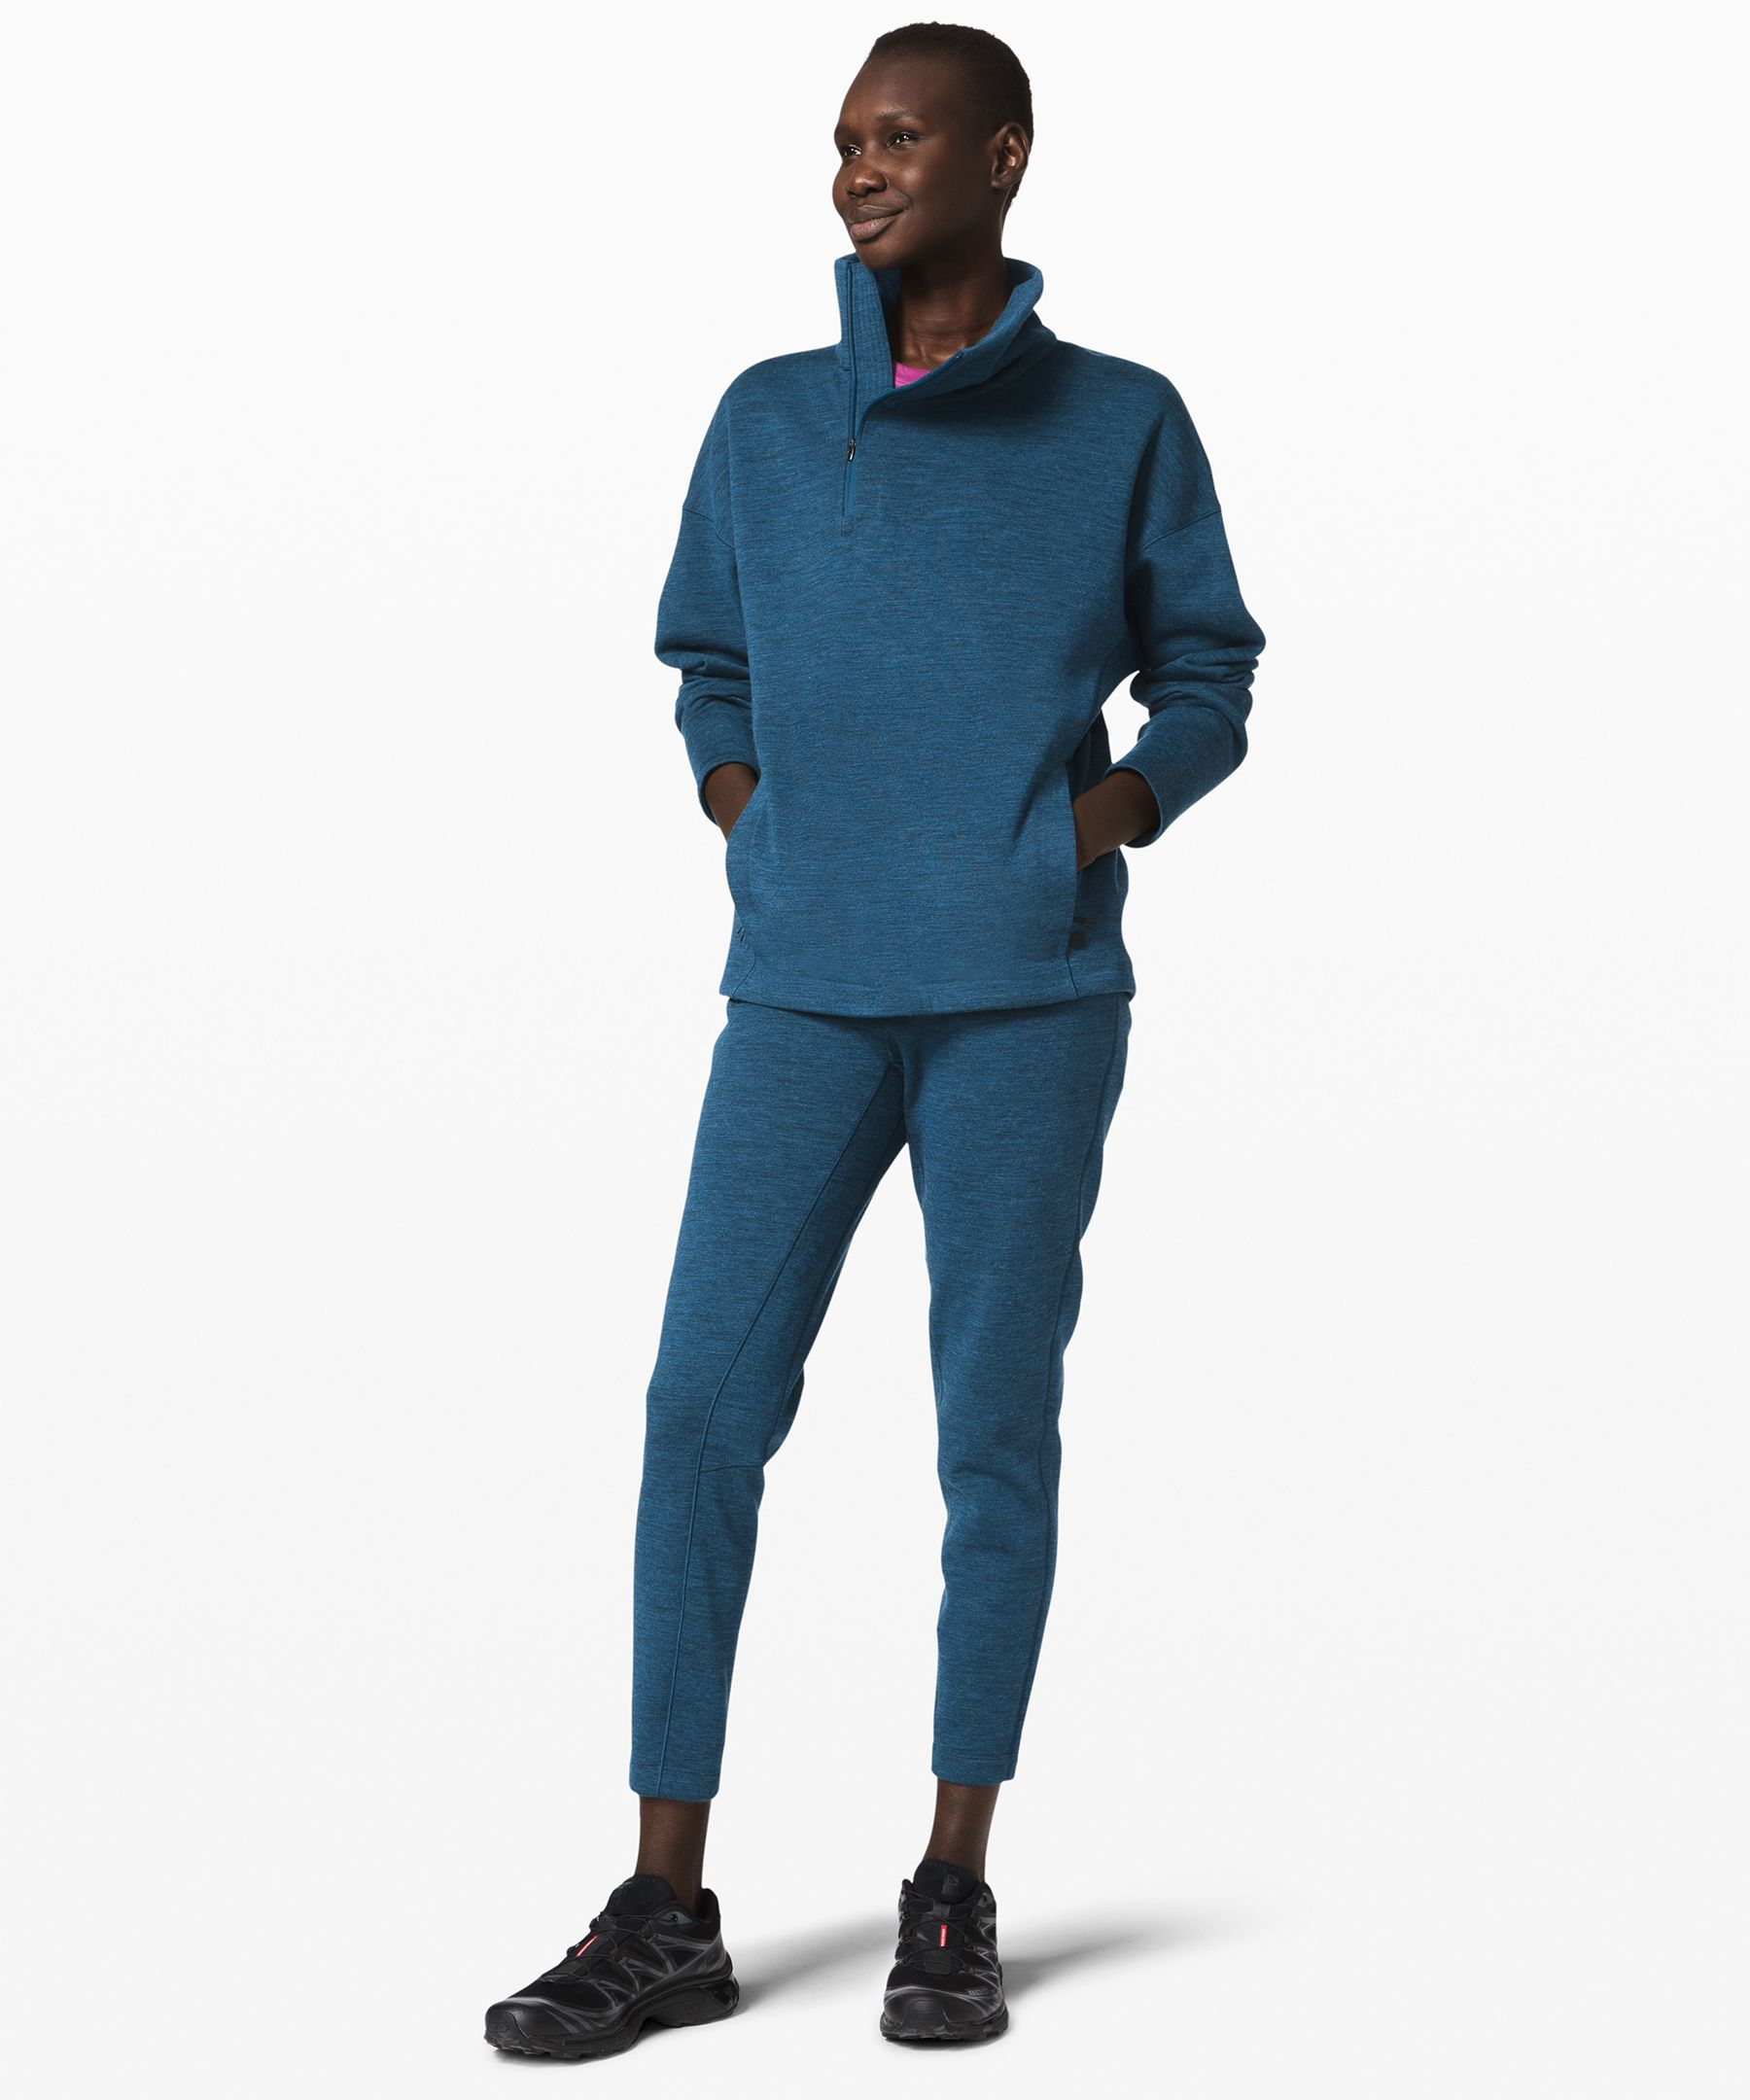 lululemon lab creates  lifestyle essentials for the  modern wardrobe. Soft, cozy  wool-blend Fleece fabric makes  these tapered joggers the  perfect pant for journeys long  and short.